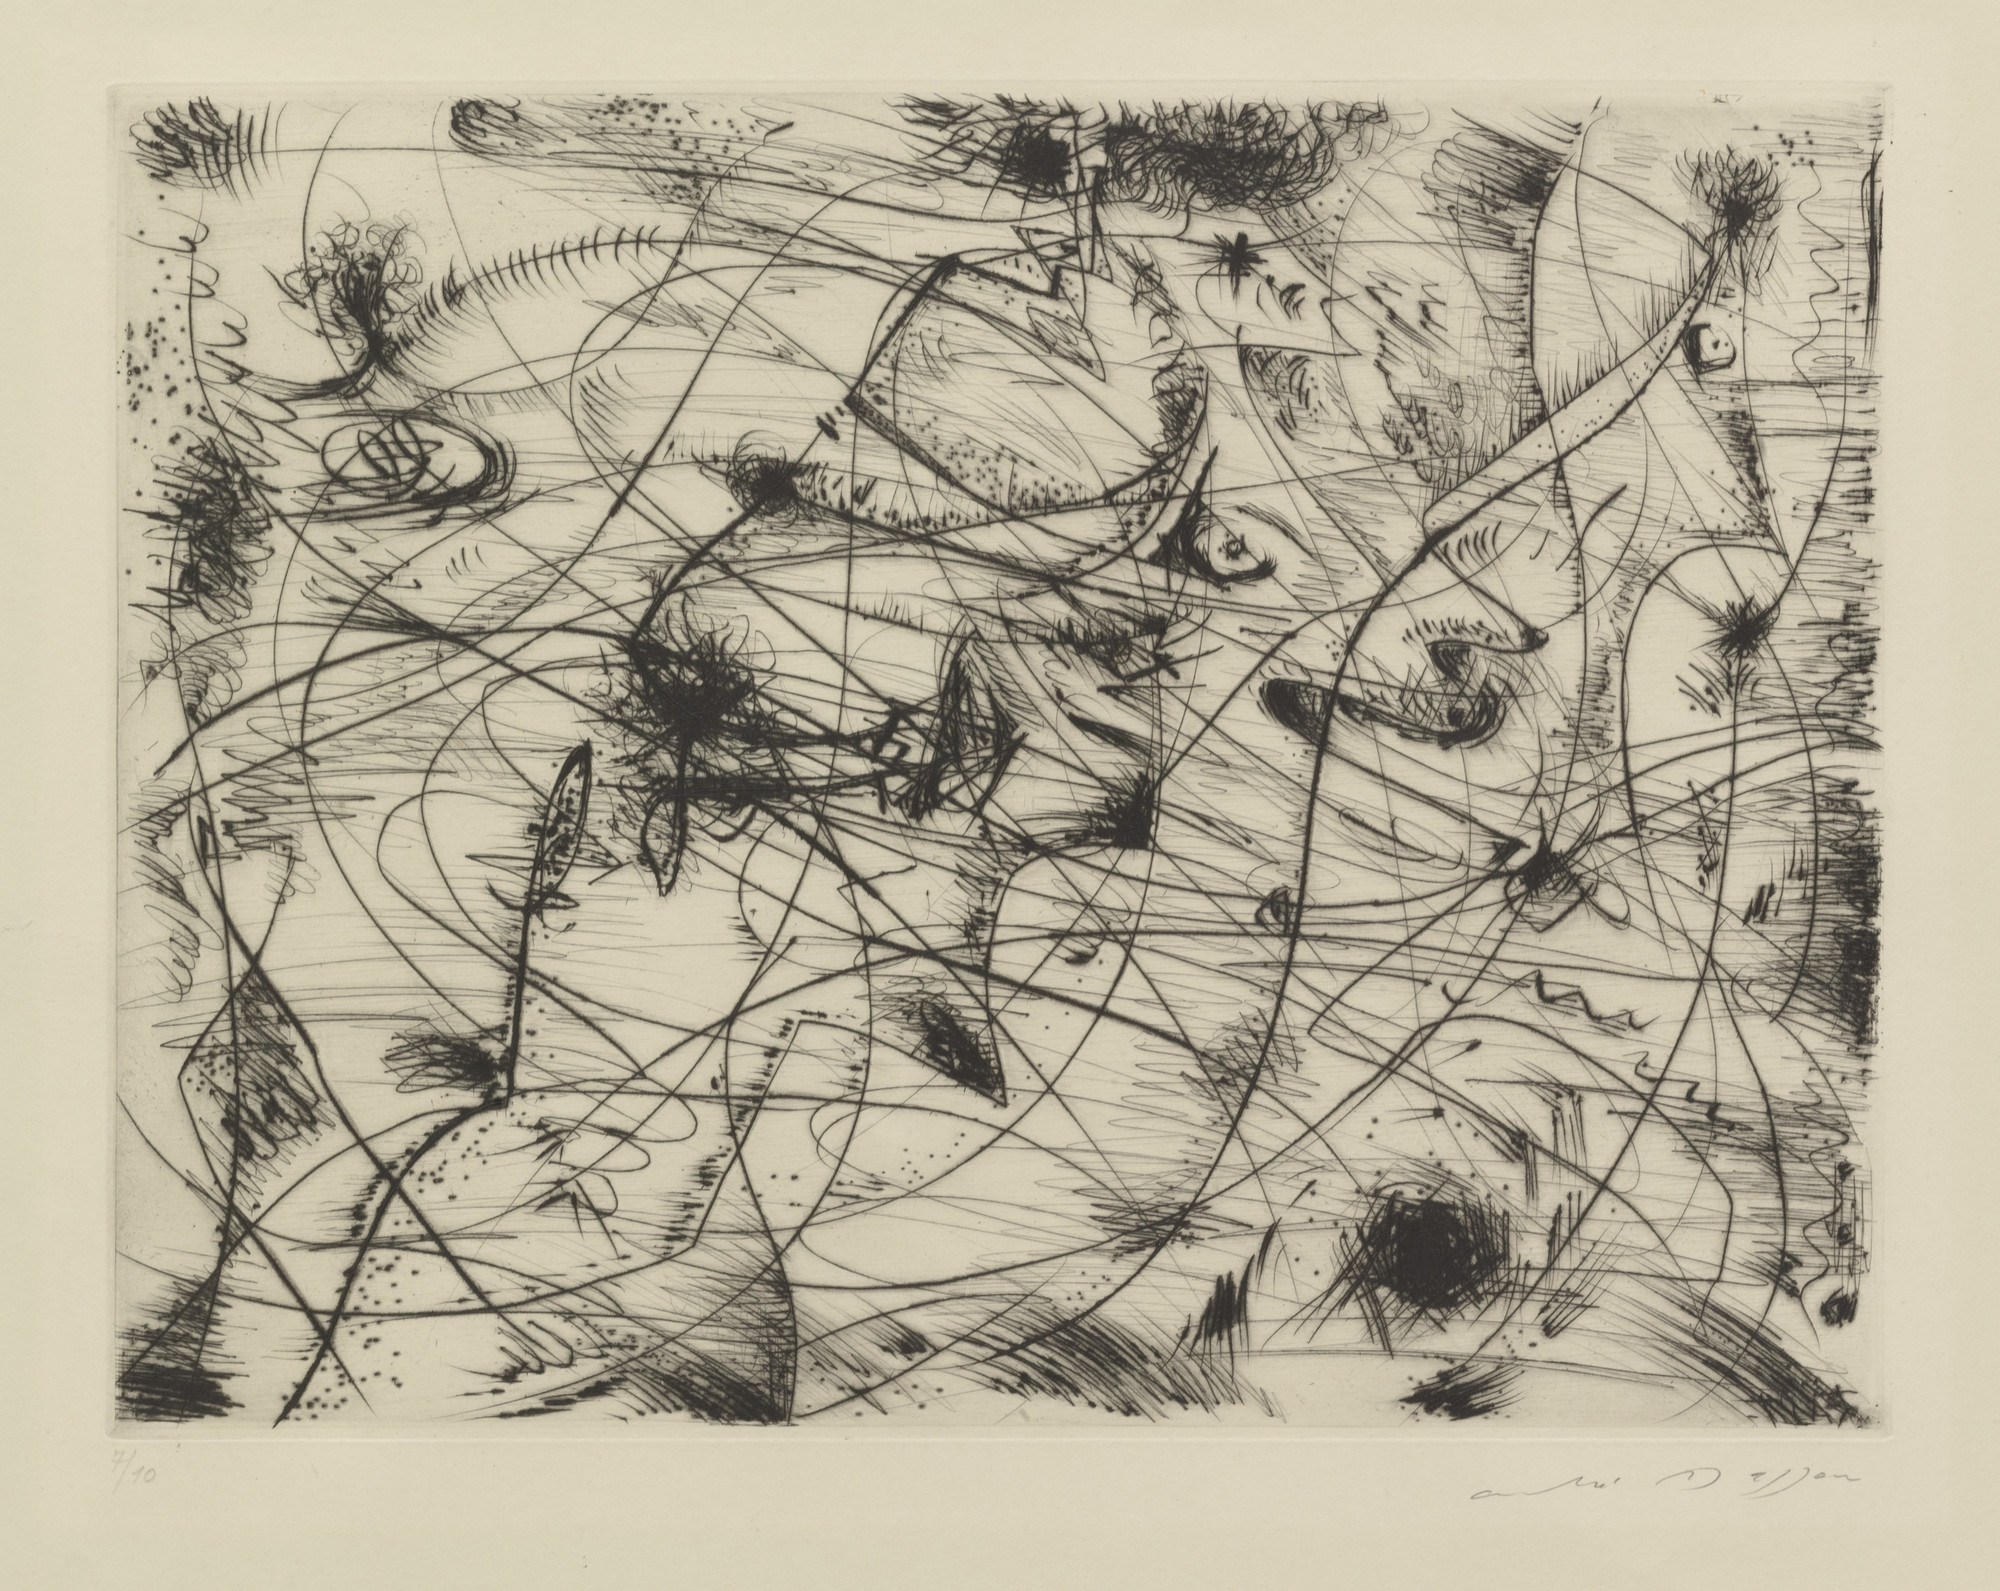 André Masson. Abduction. c. 1946 (printed 1958)